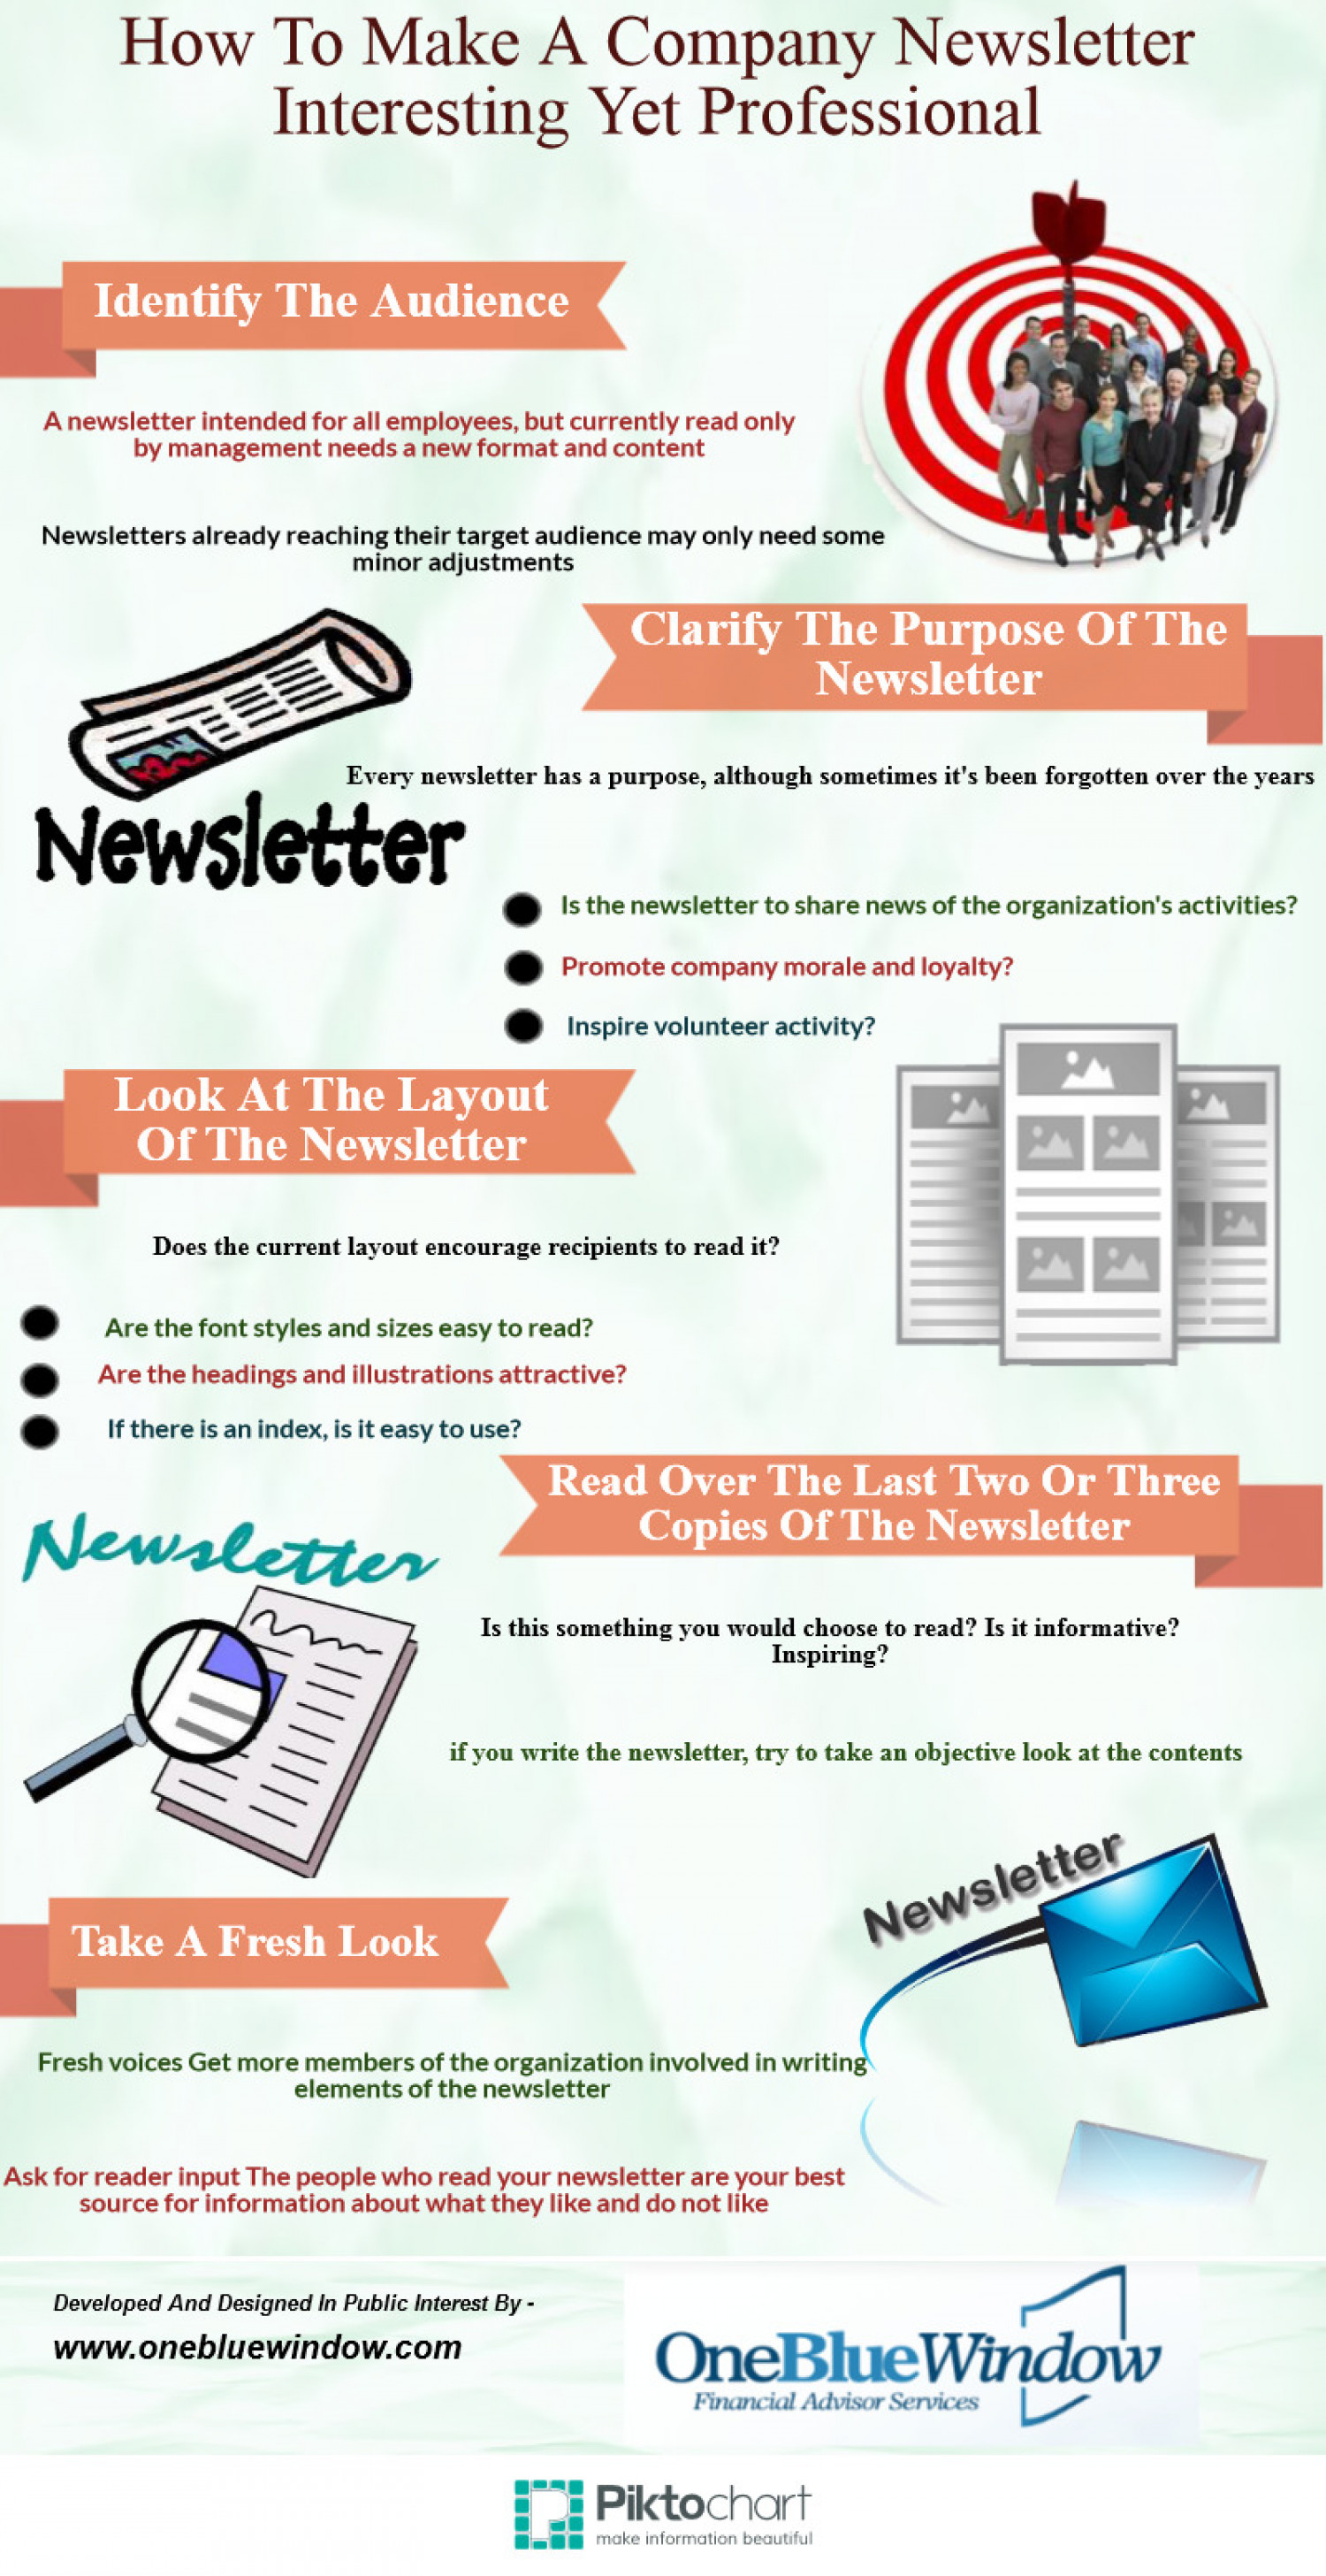 how to make a company newsletter interesting yet professional